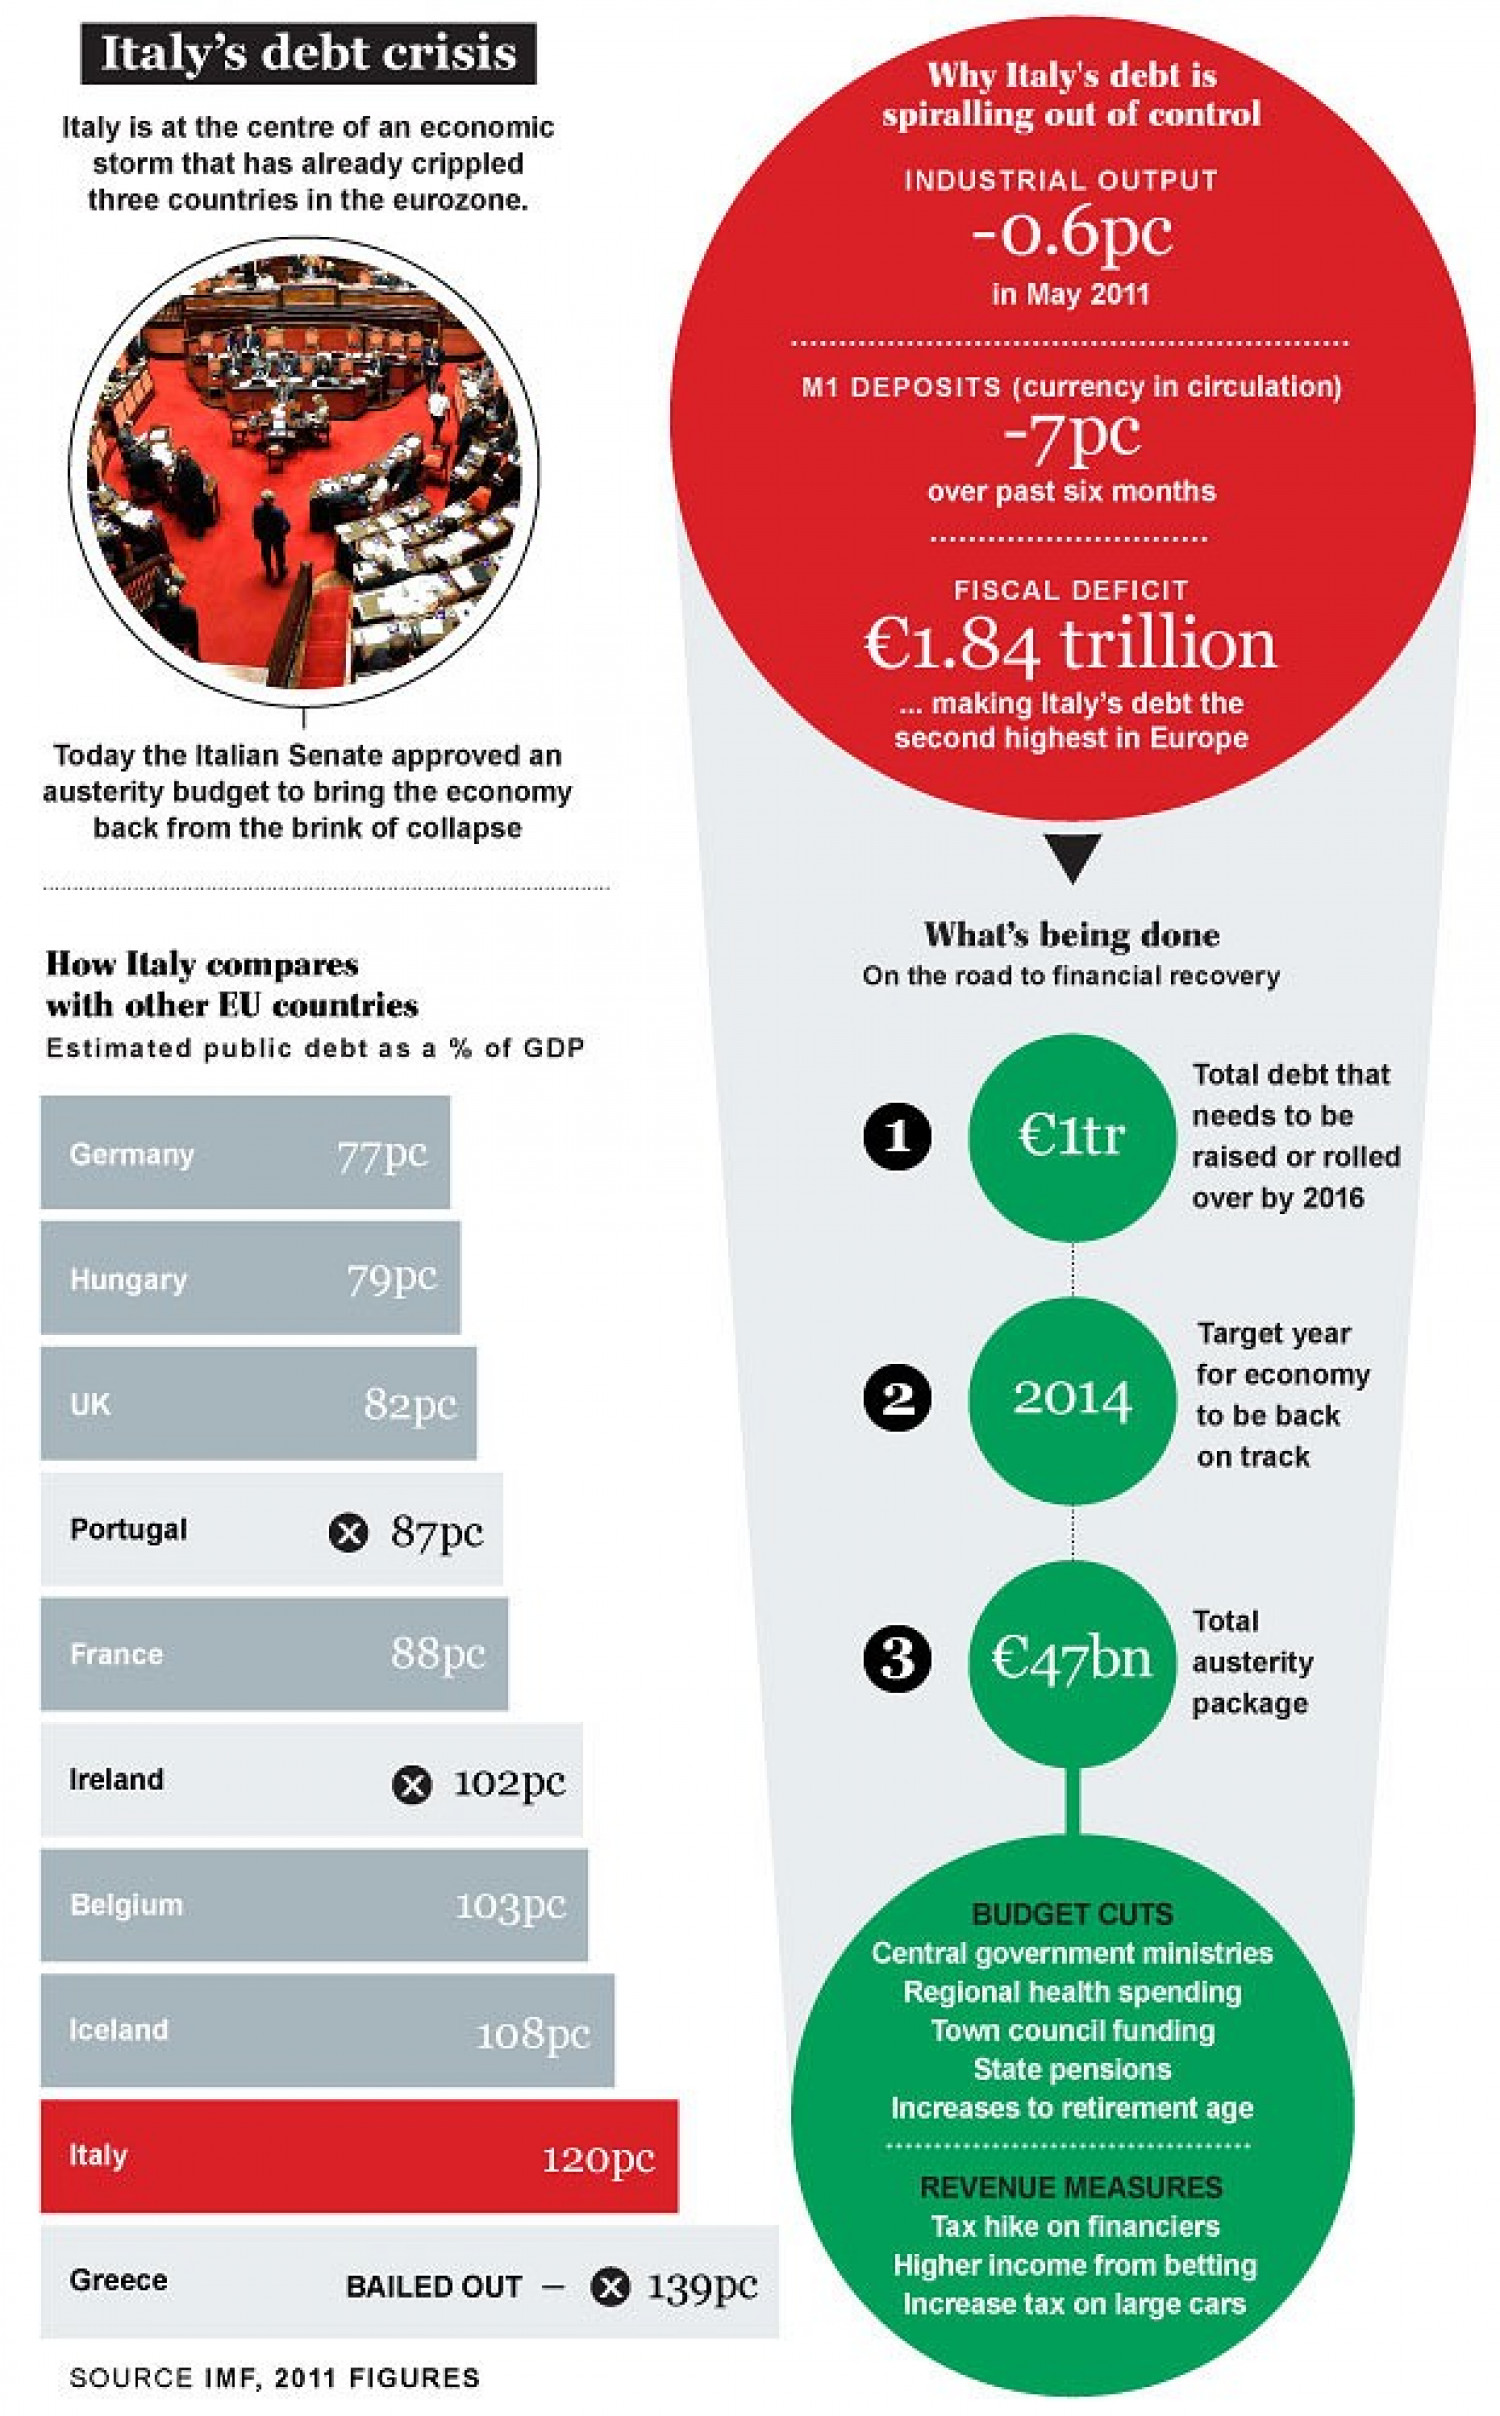 Italy's Debt Crisis Infographic